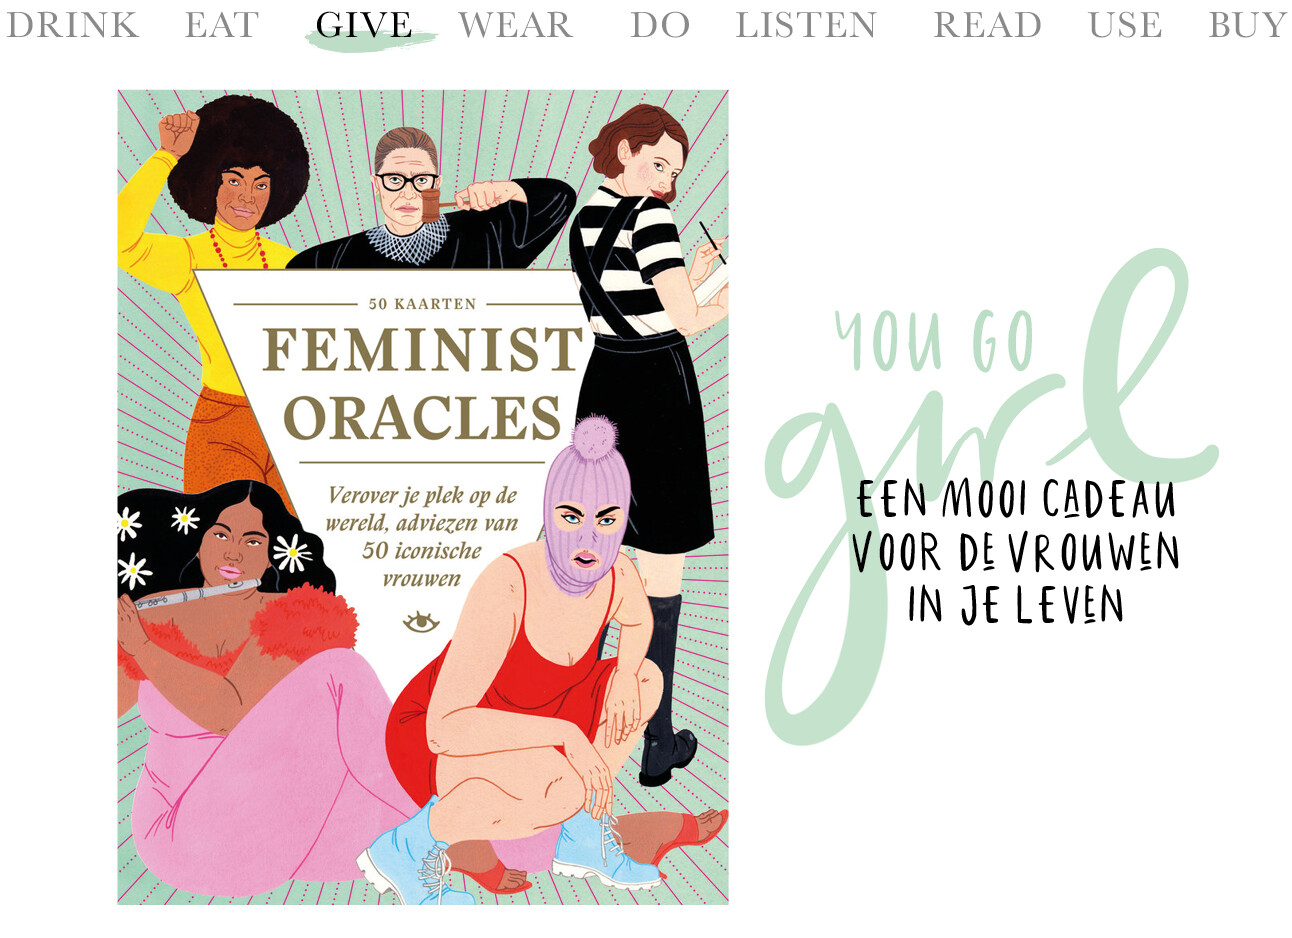 today we give feminist oracles cards